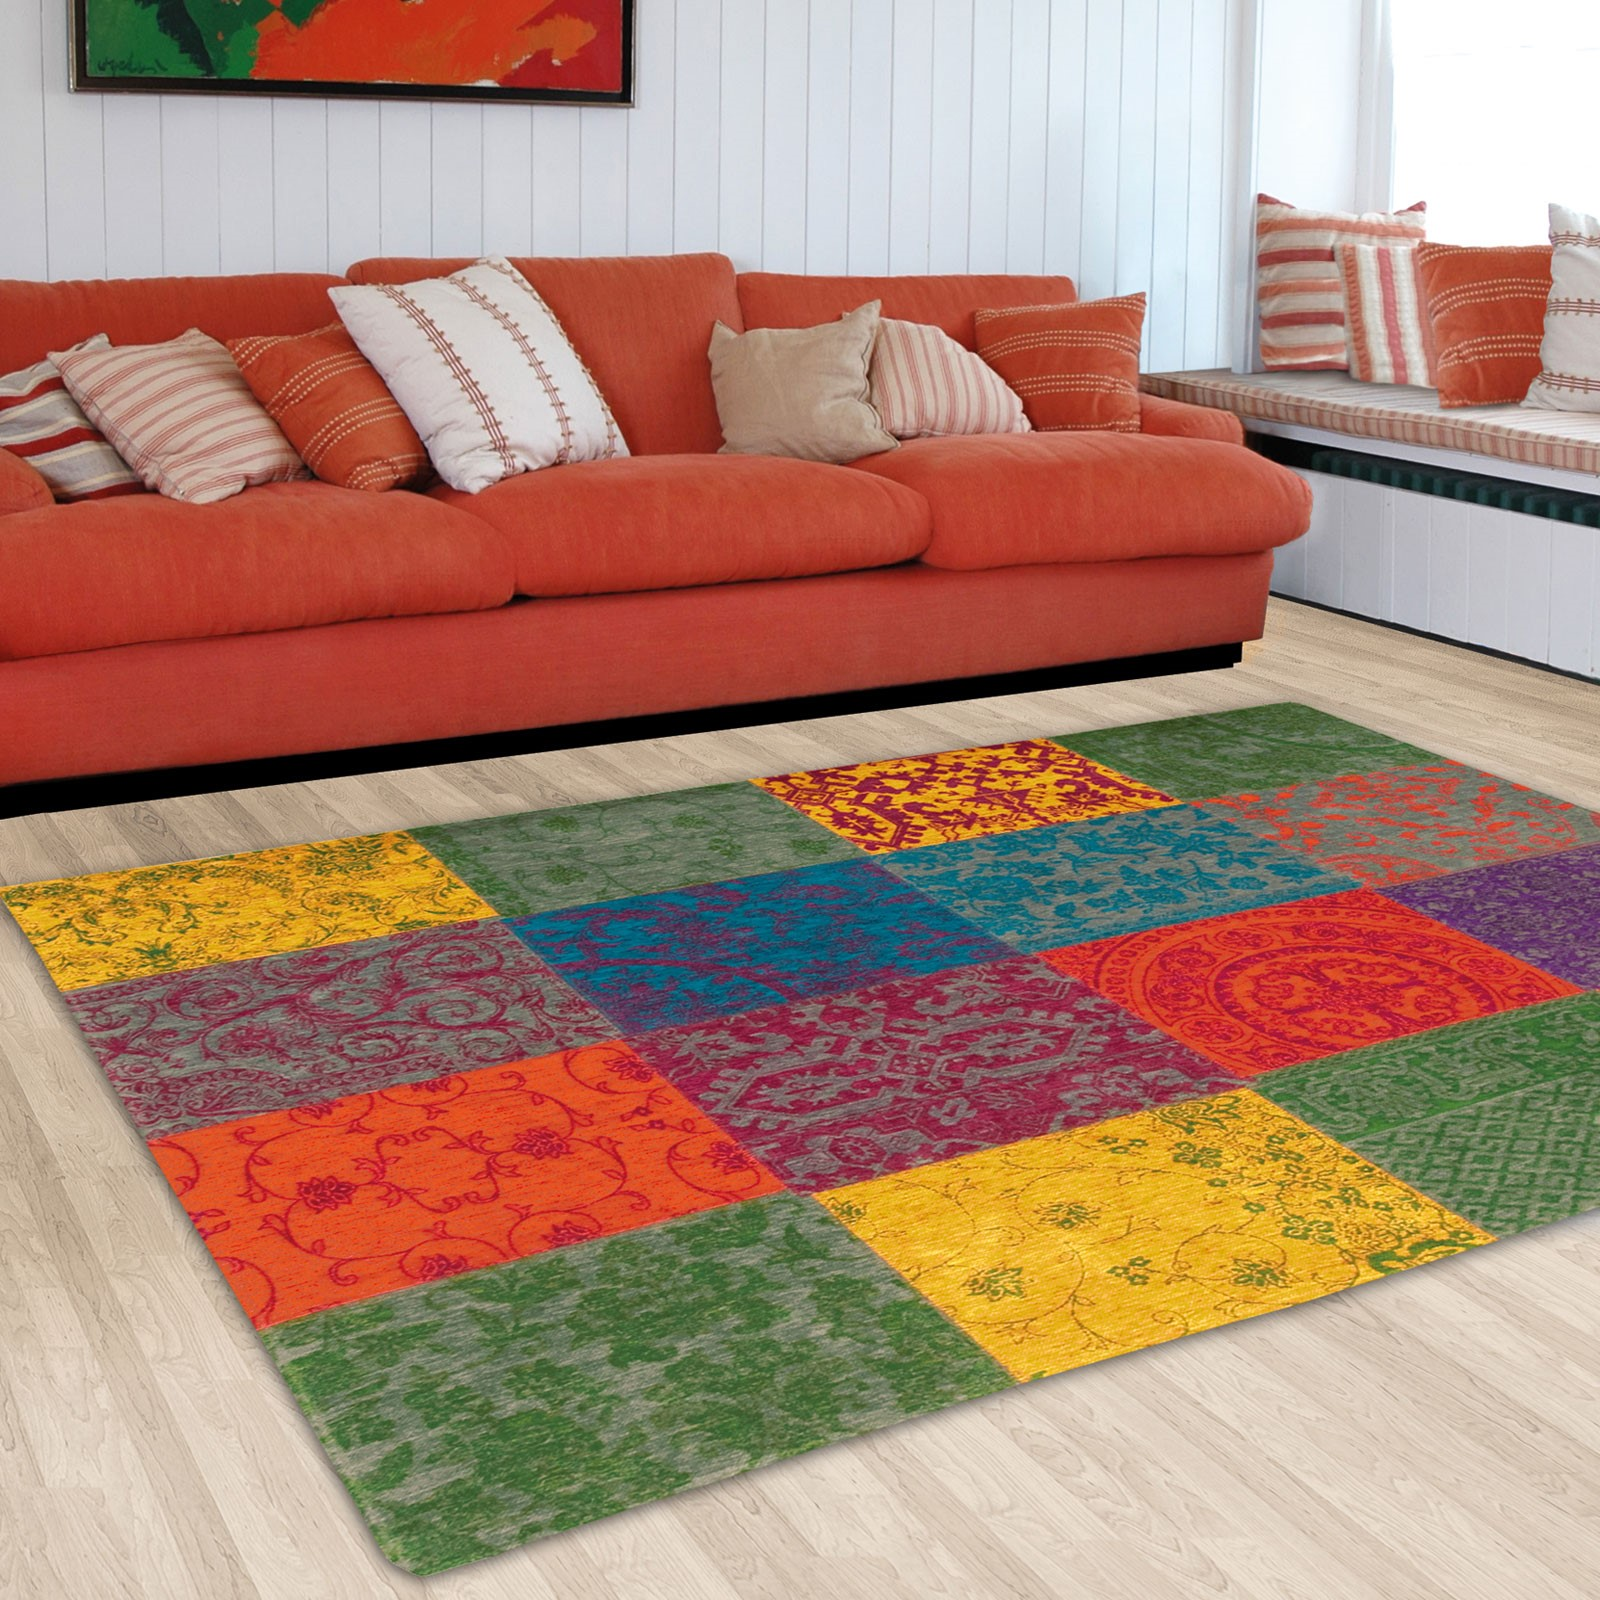 Multi Sunbird rug from the Louis de Poortere Vintage